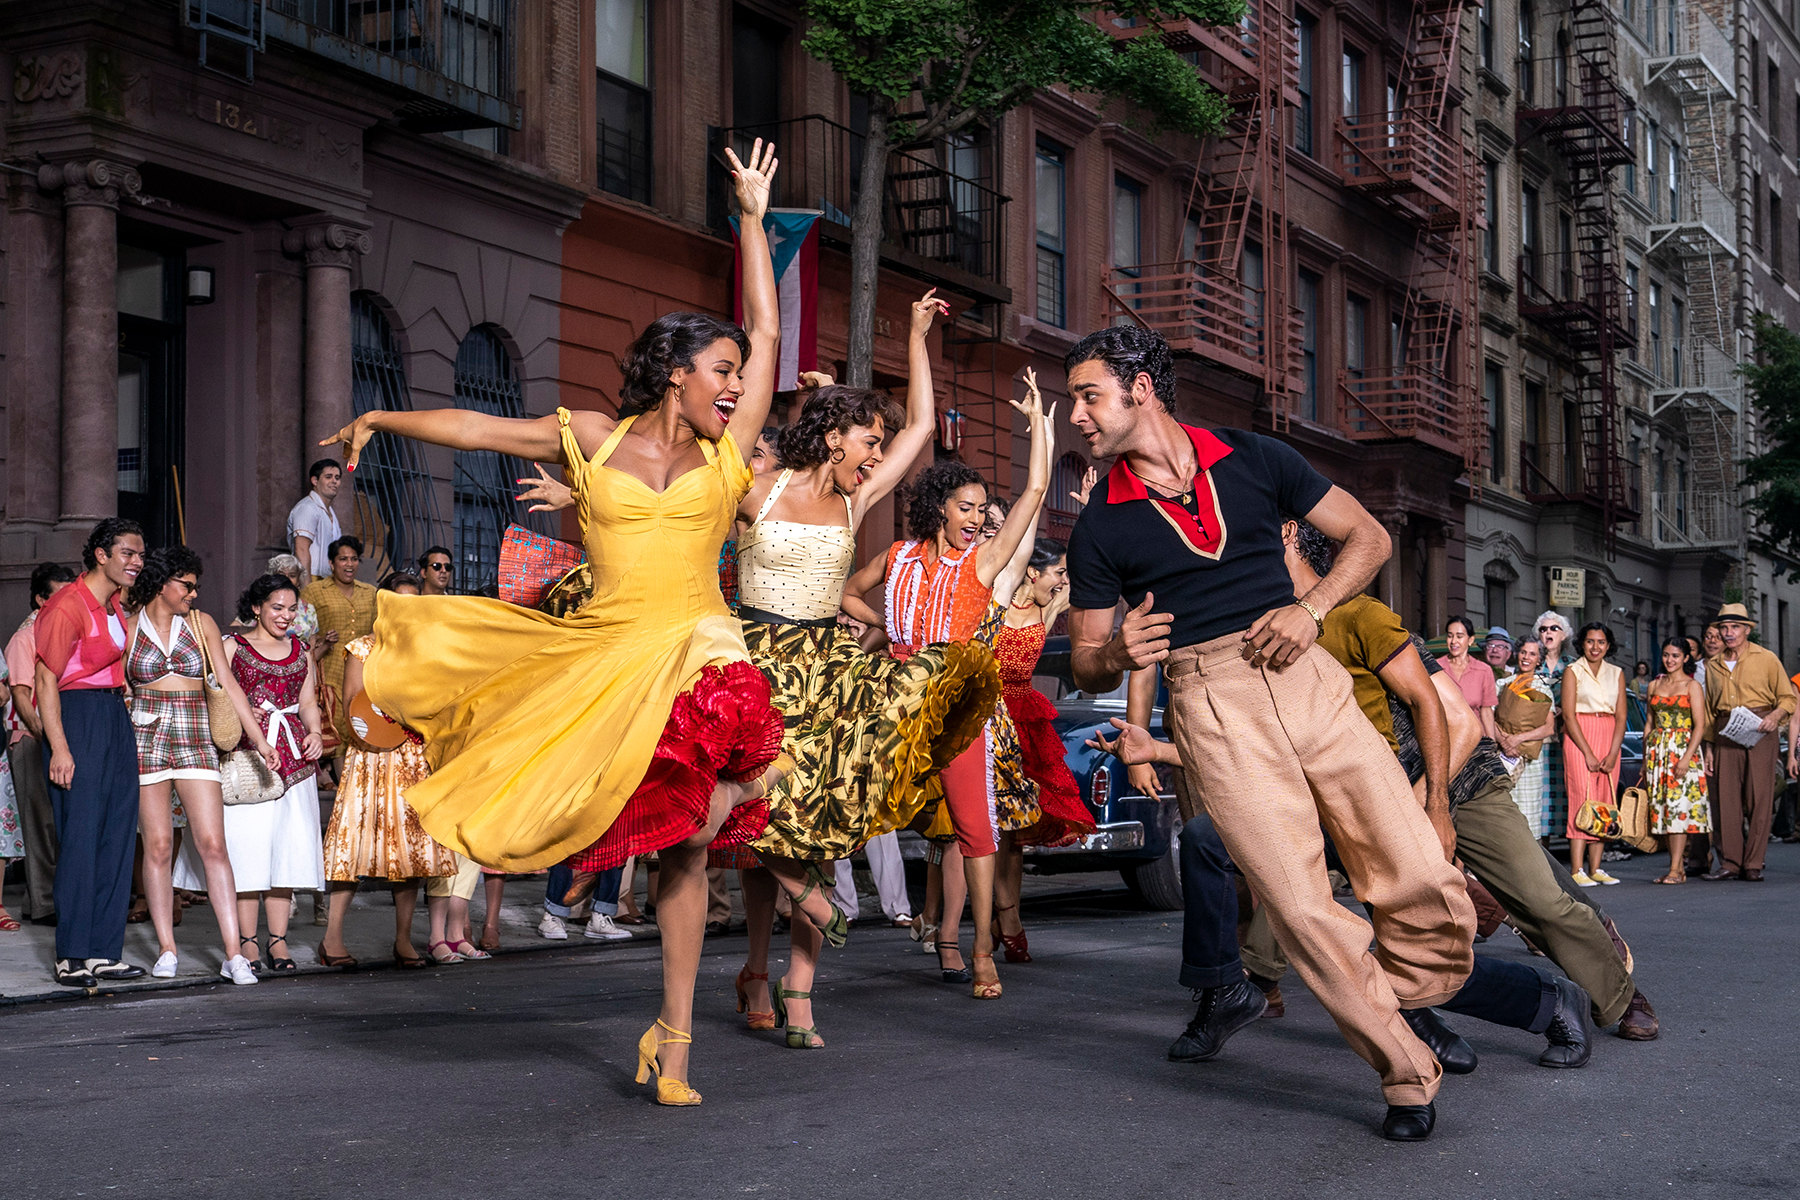 """A still from """"West Side Story"""" of the Puerto Rican characters dancing"""